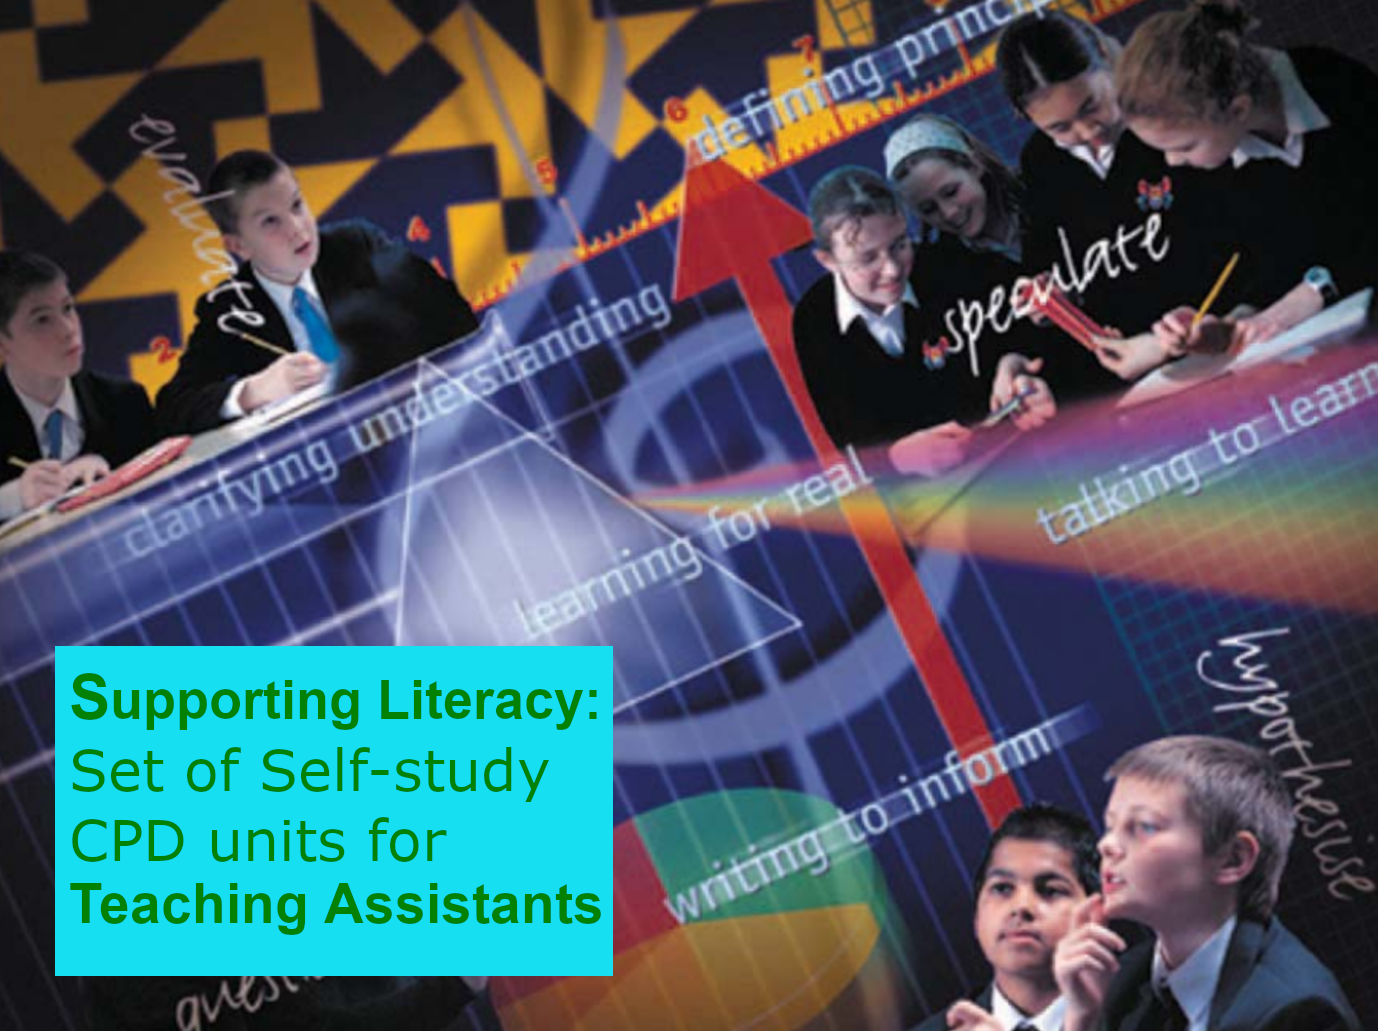 Supporting Literacy: Set of Self-study CPD units for Teaching Assistants